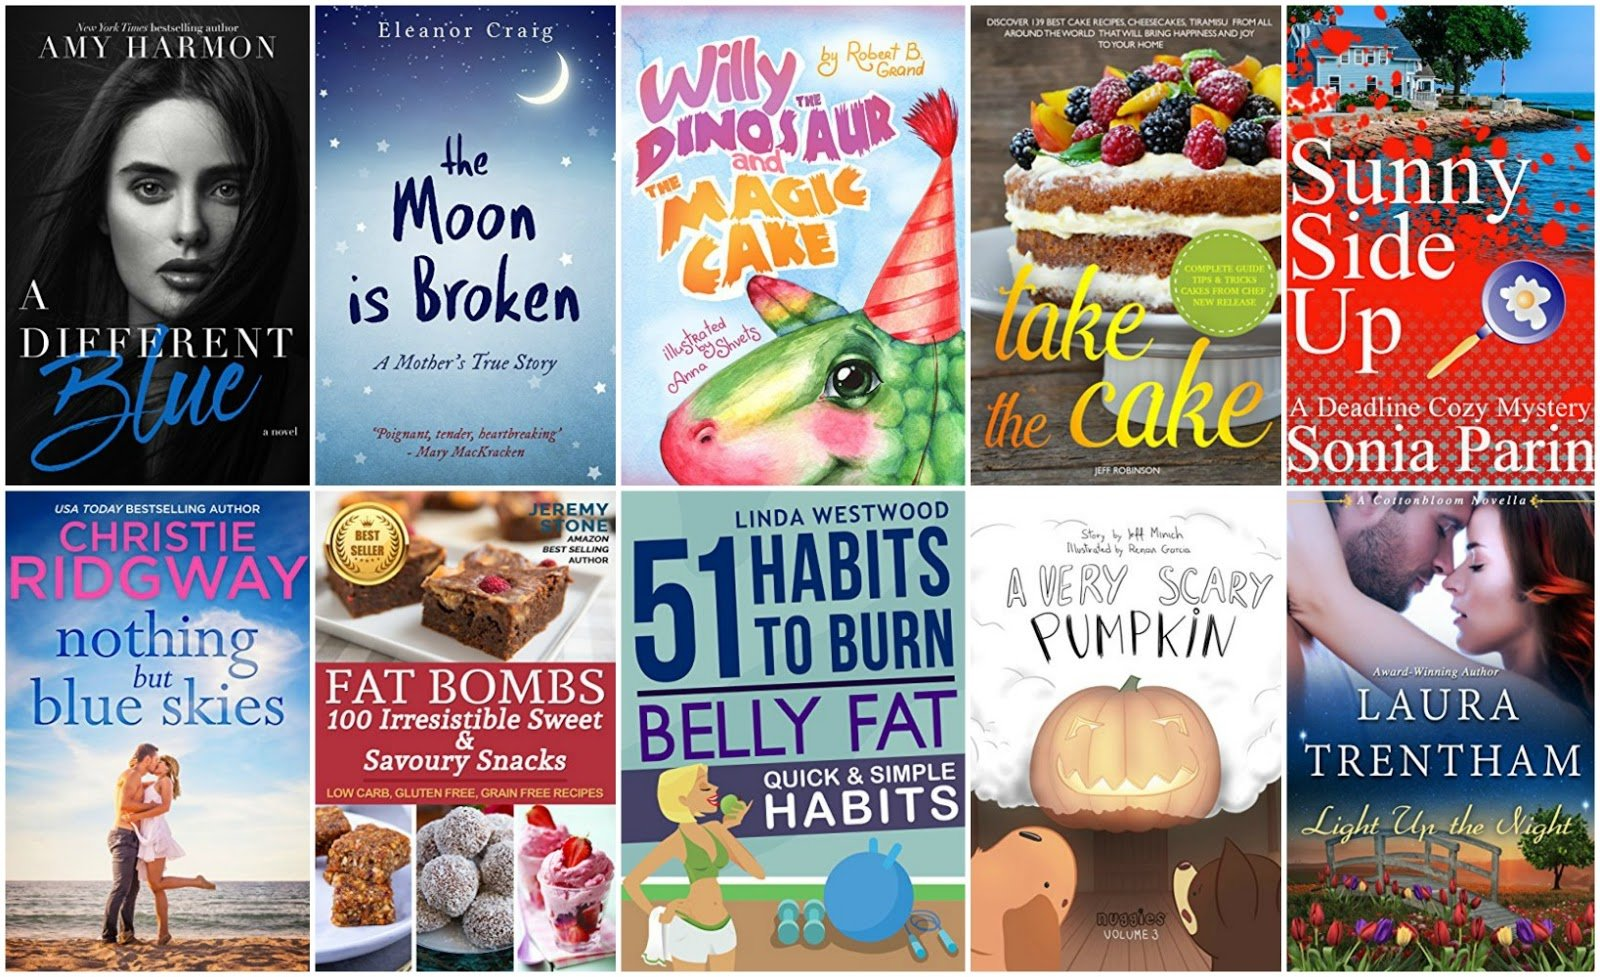 10 Free Kindle Ebooks: A Different Blue, The Moon is Broken and More!